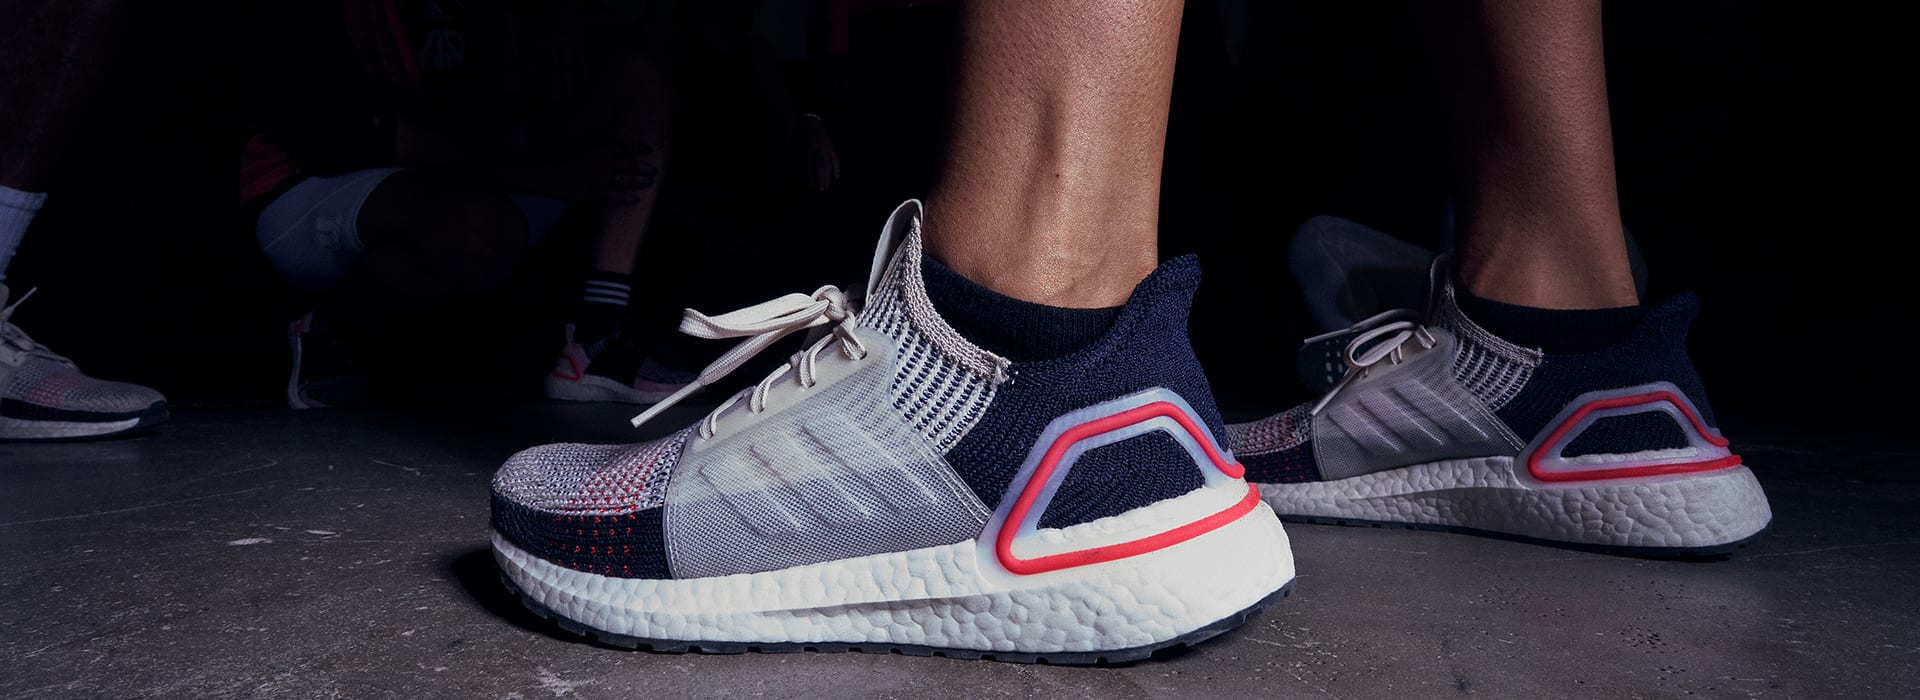 The Only Ultraboost Sizing Guide You'll